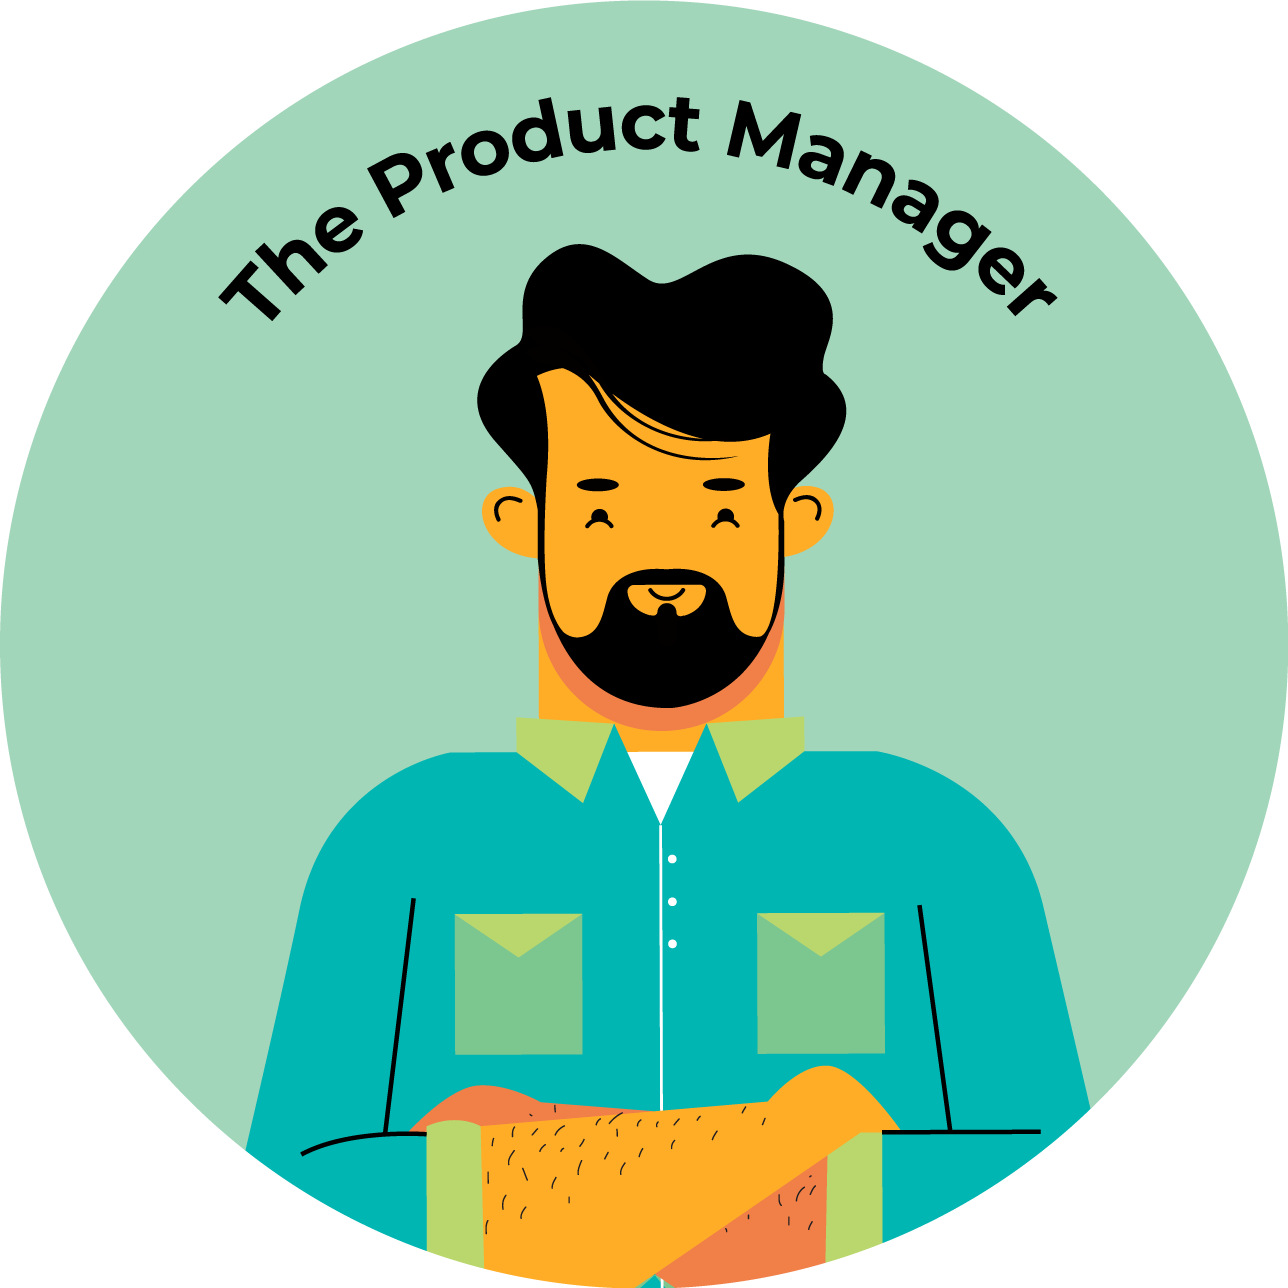 the-product-manager.png